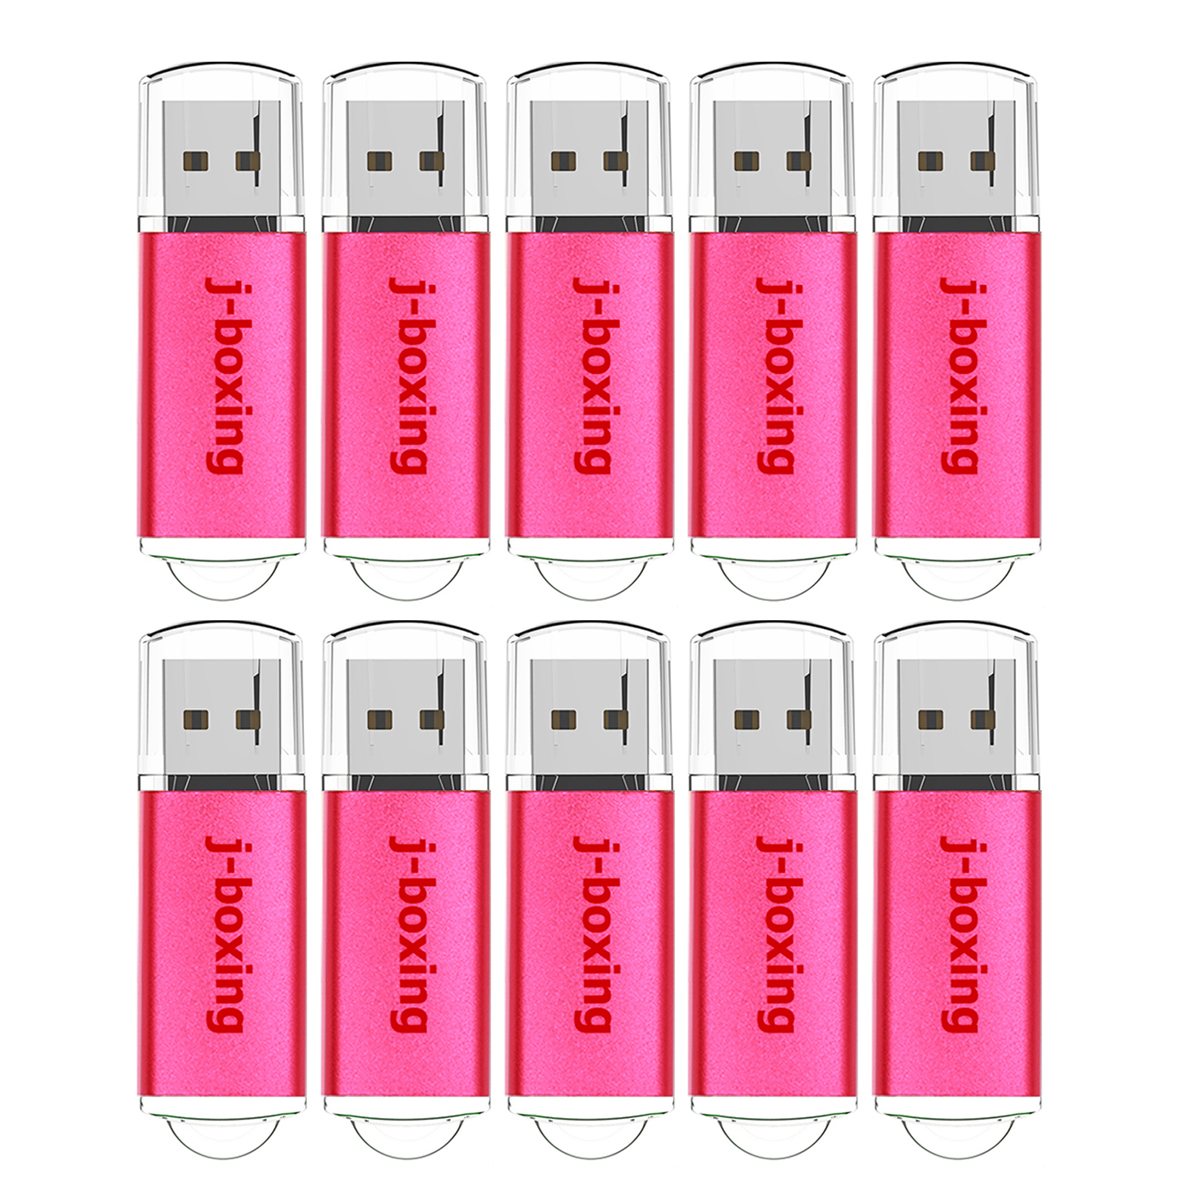 Image 4 - J boxing 10PCS USB Flash Drive 512MB 256MB 128MB 64MB Small Capacity Memory Stick Jump Drive Pen Drives for Desktop Multi colors-in USB Flash Drives from Computer & Office